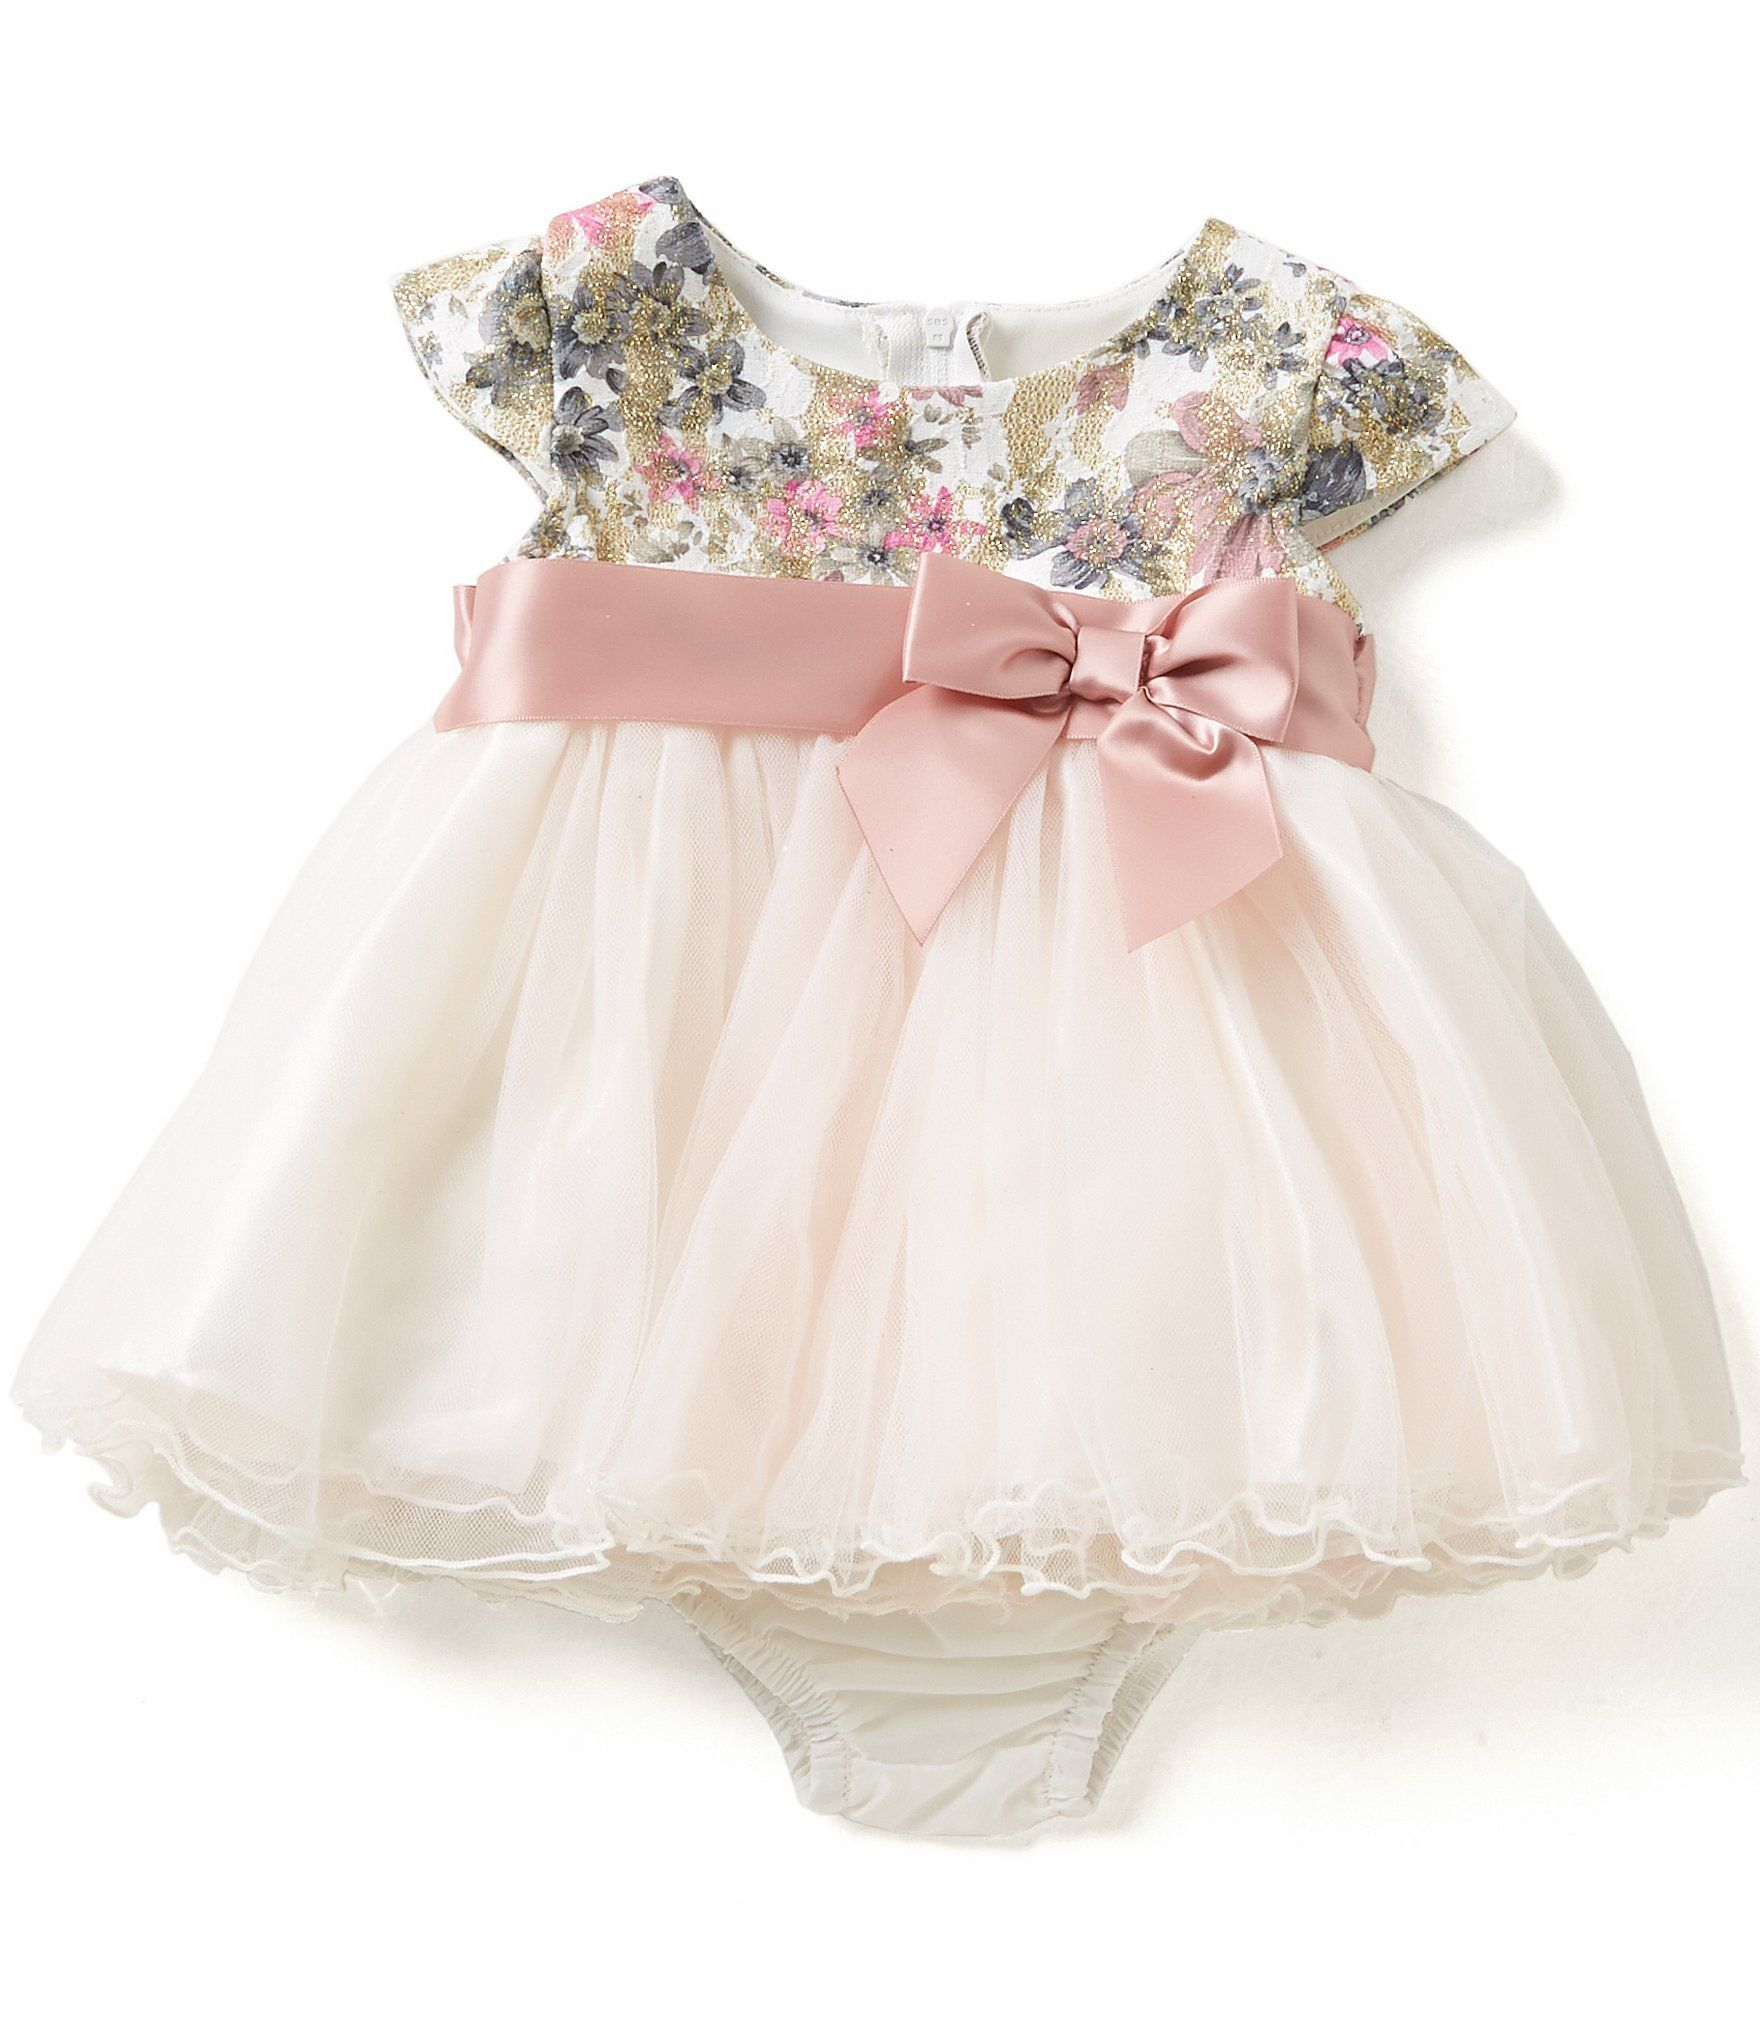 Bonnie Baby Baby Girls Newborn 24 Months Floral Lace Bodice to